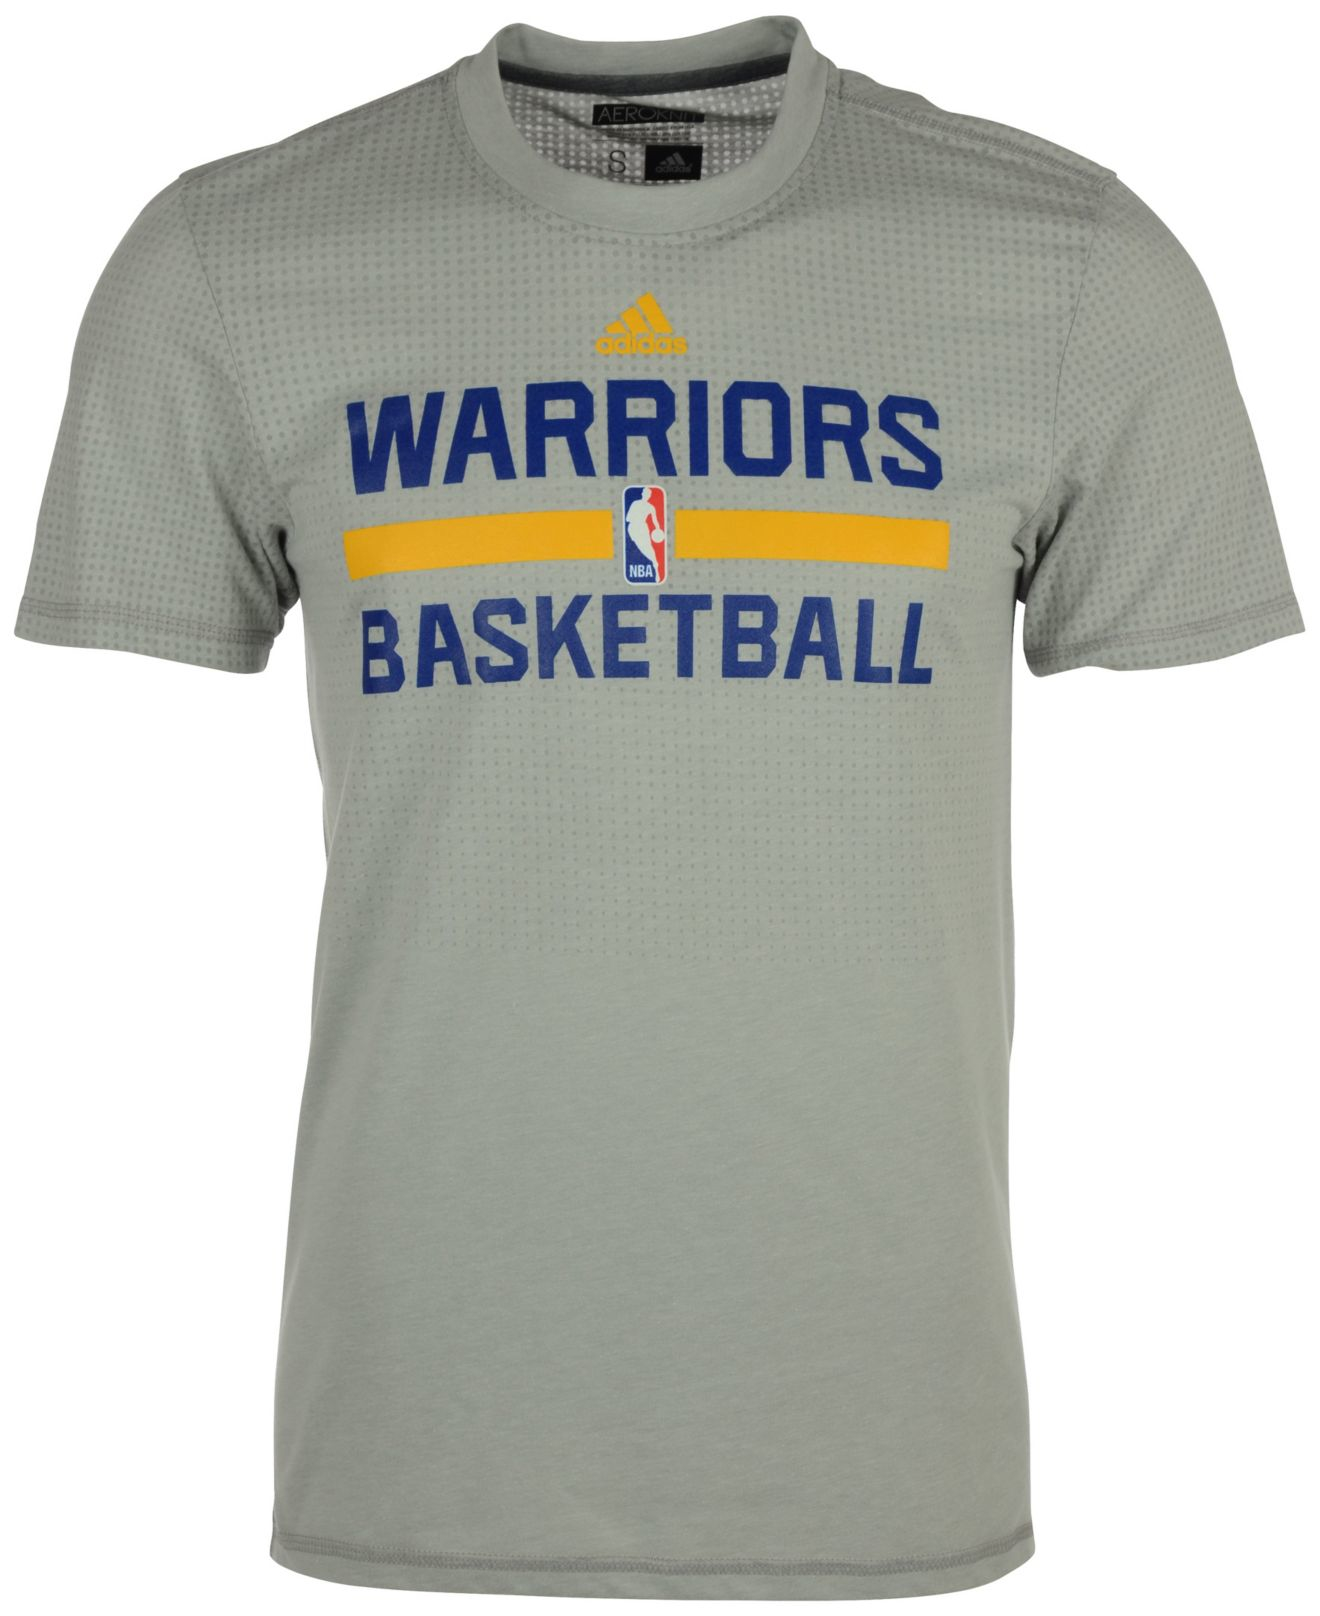 b3a9d6b58ed7a Lyst - adidas Men s Golden State Warriors On Court Graphic Aeroknit ...